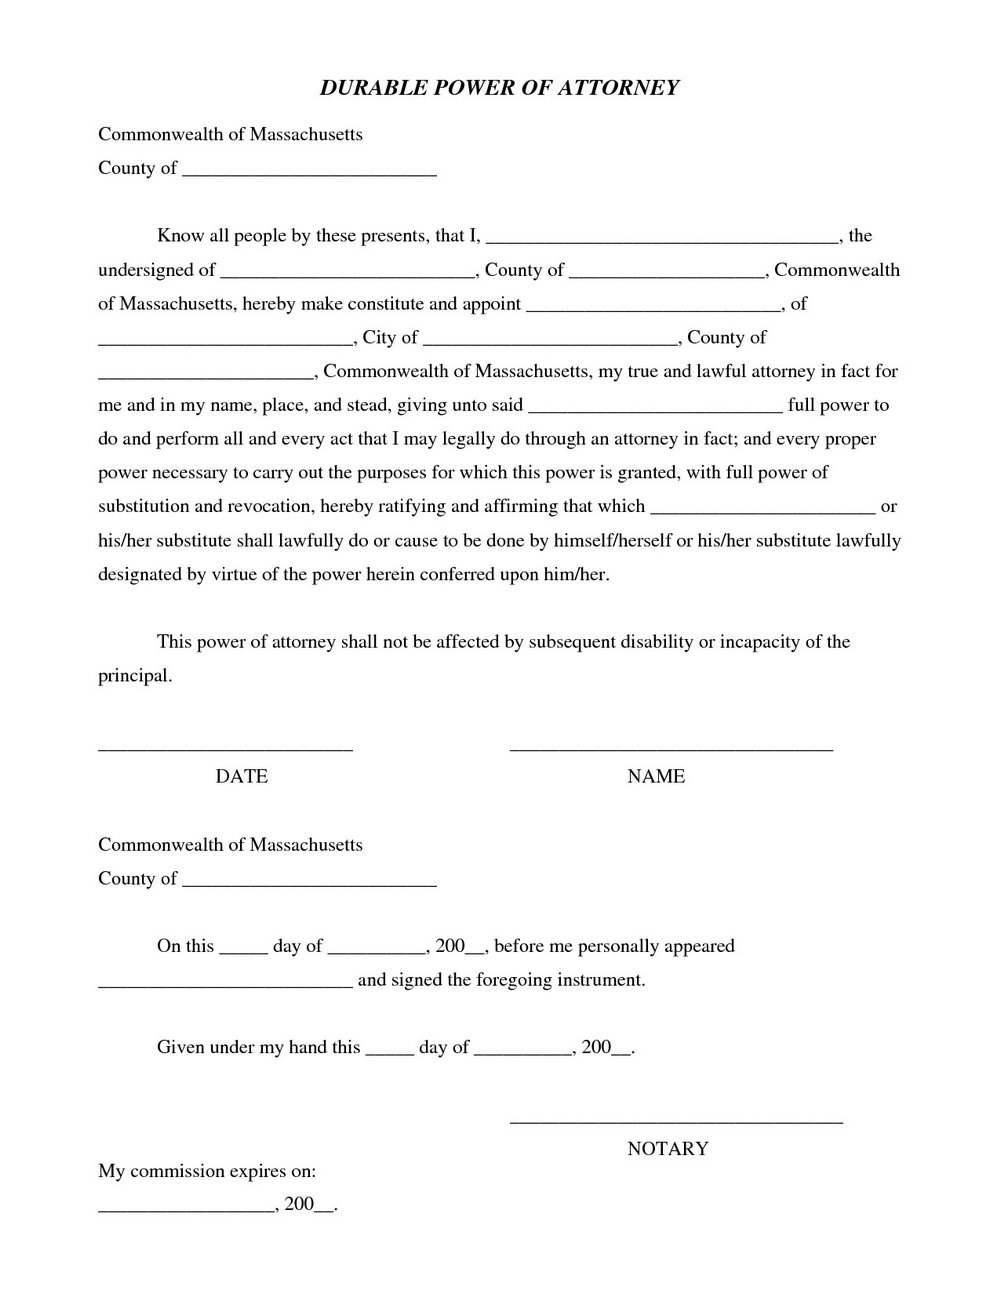 Printable Durable Power Of Attorney Form